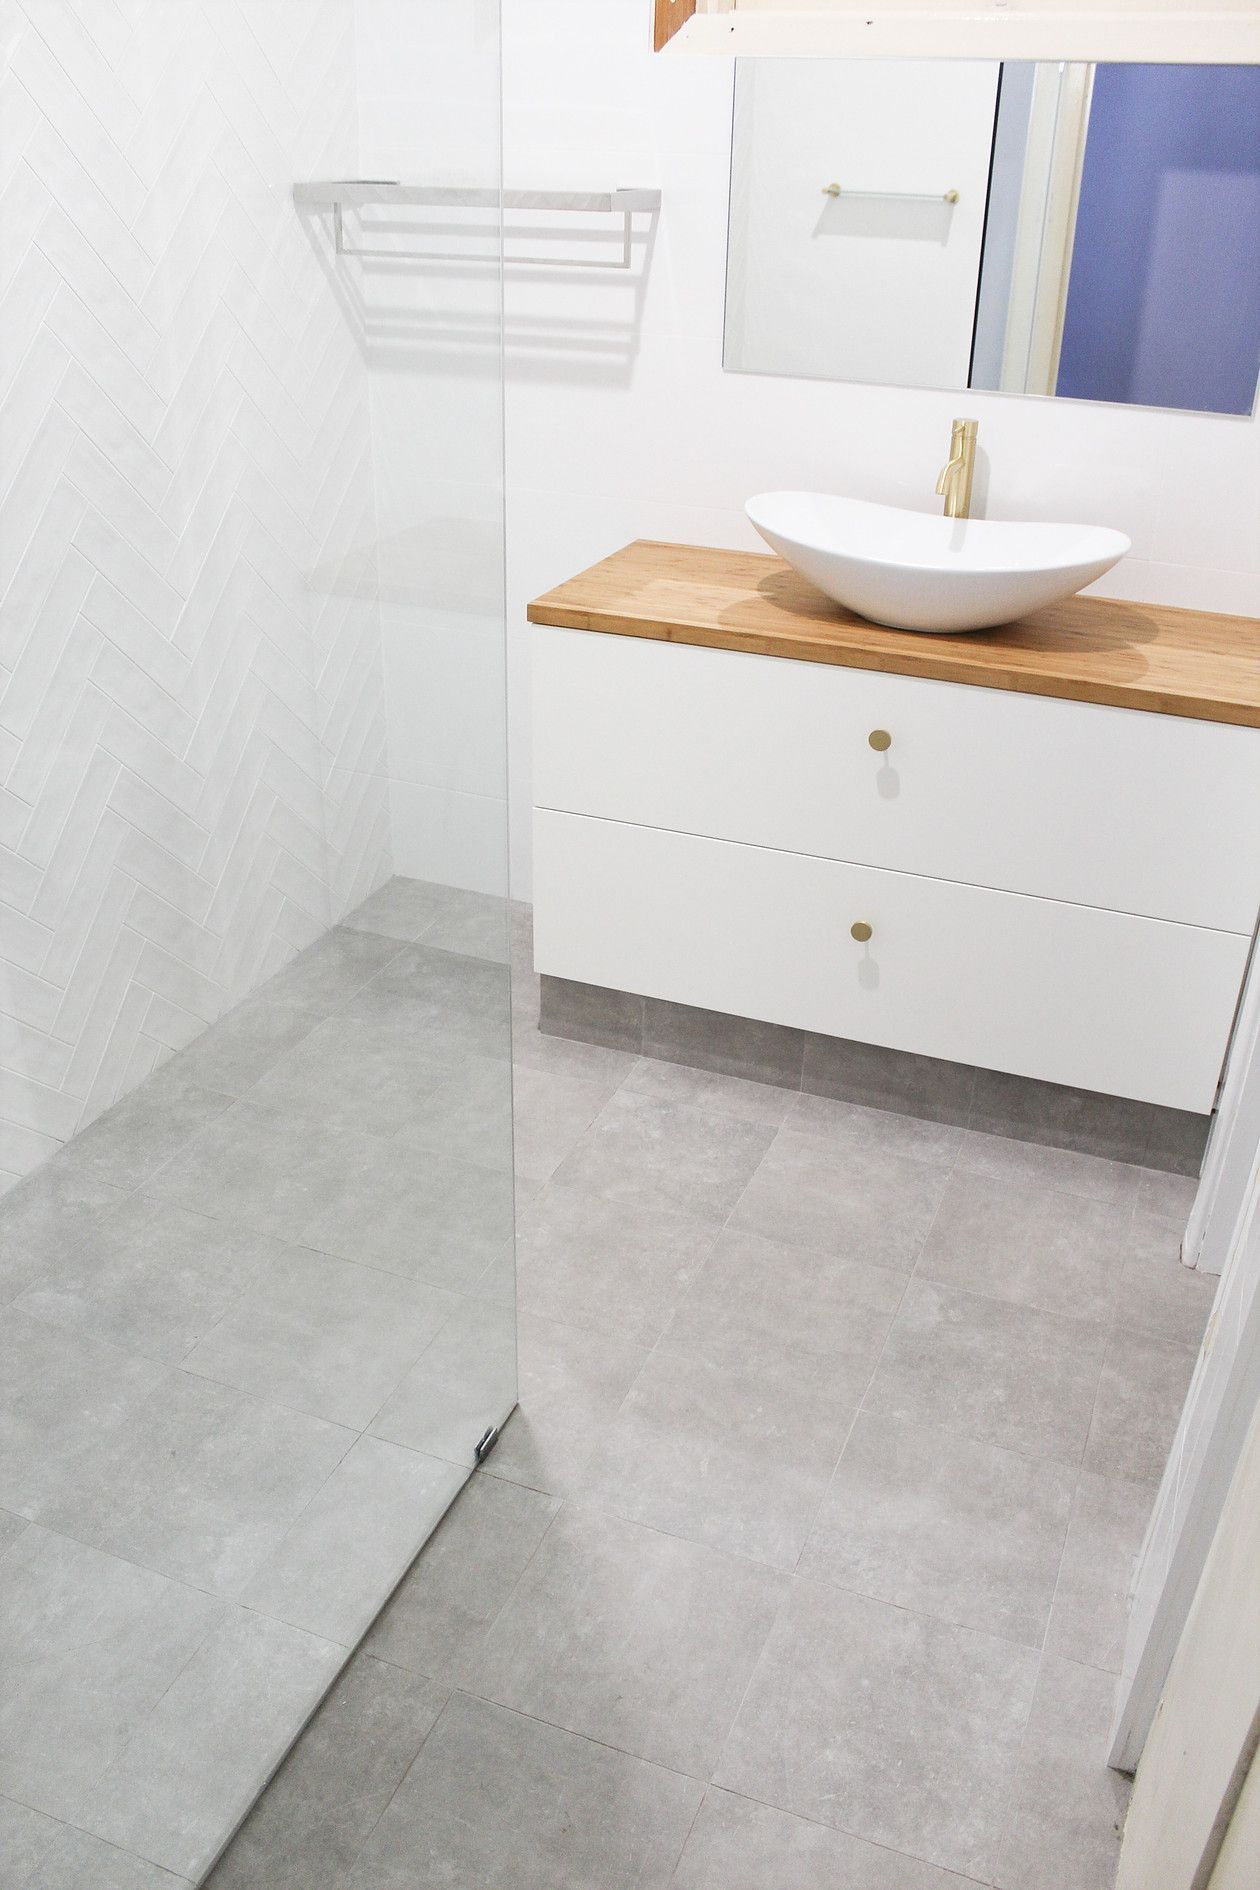 Before And After Walk In Shower Bathroom Renovations Perth Bathroomrenovati Bathro In 2020 Bathroom Renovations Perth Bathroom Renovation Trends Walk In Shower